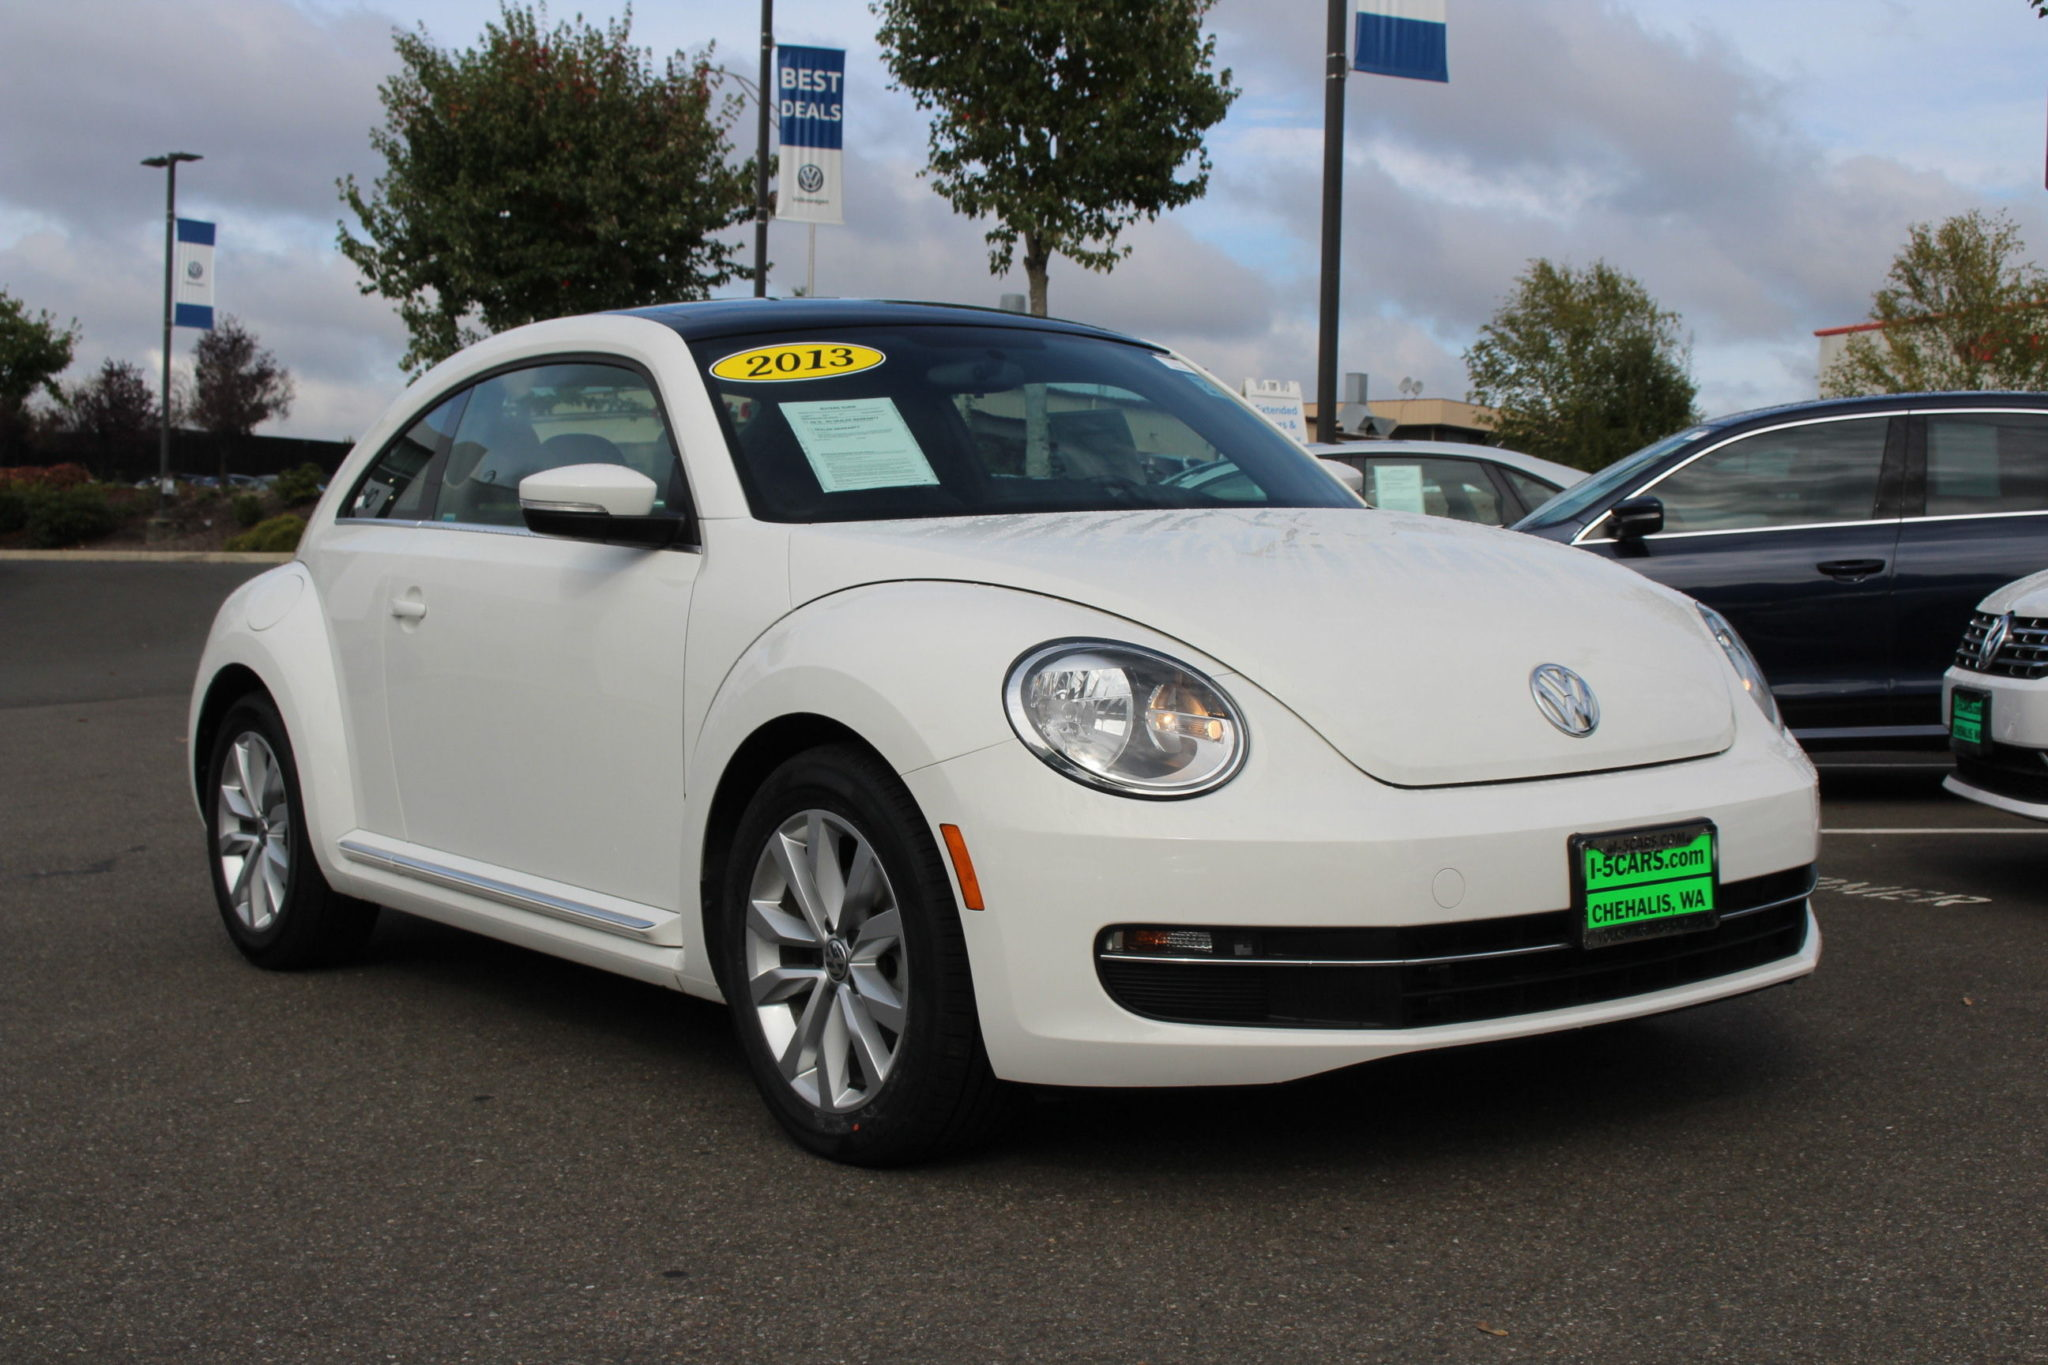 tdis are back and ready to sell at volkswagen of olympia - thurstontalk